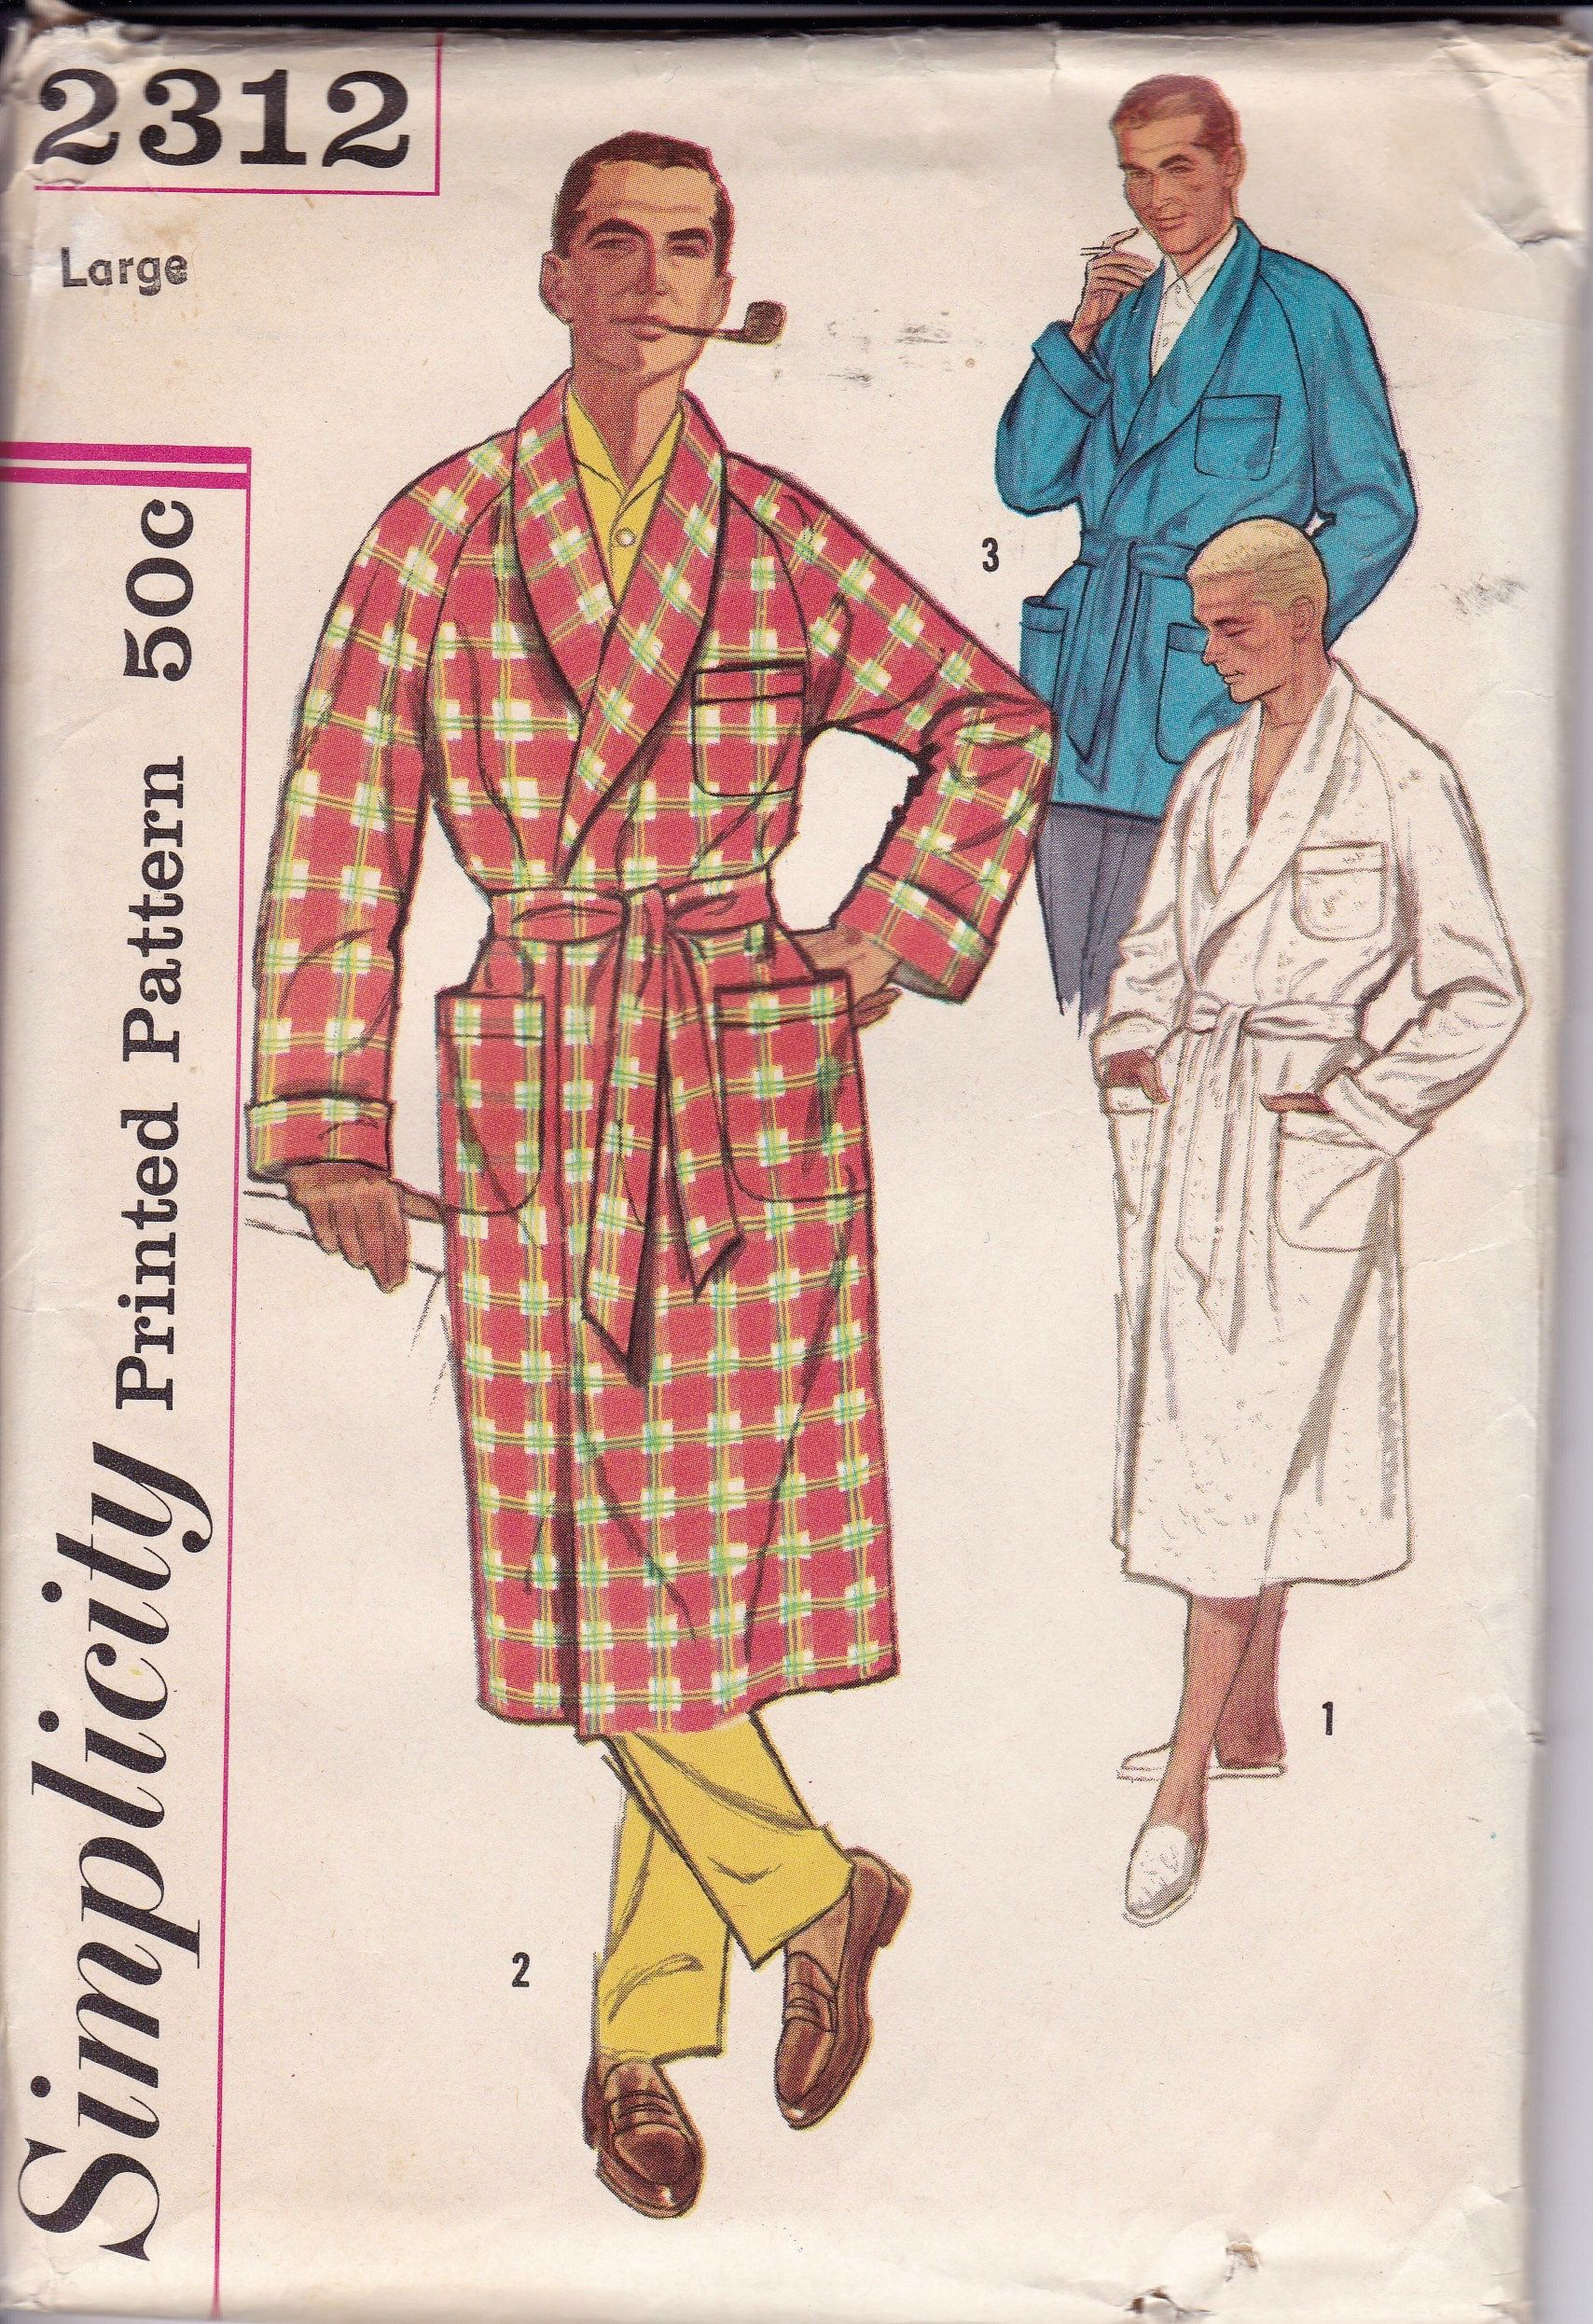 Men S Robe And Lounge Jacket Size Large Sewing Pattern 46 To 48 Inch Chest Size Vintage Lounge Jacket Fashion Illustration Vintage Vintage Sewing Patterns